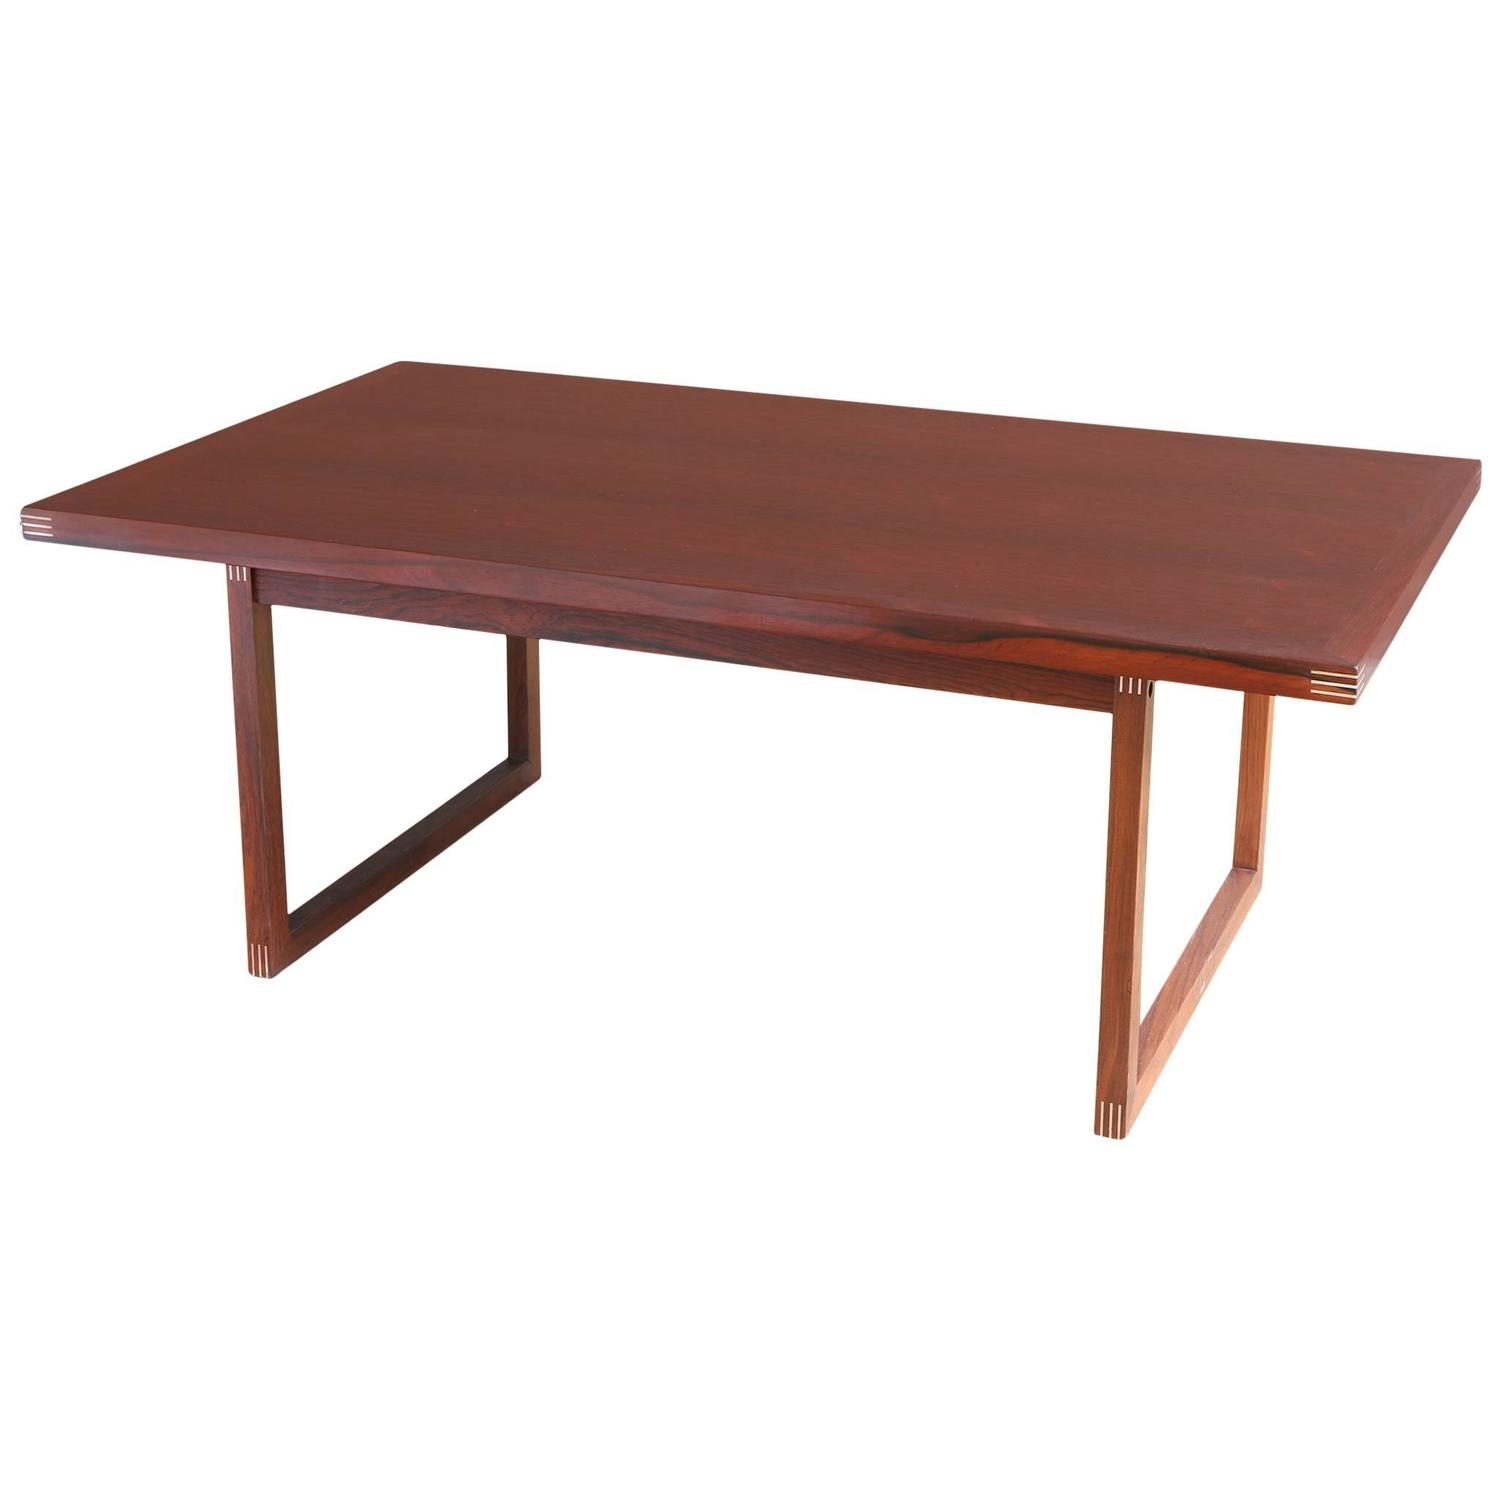 Rosewood Coffee Table by Rud Thygesen for Heltborg M¸bler at 1stdibs